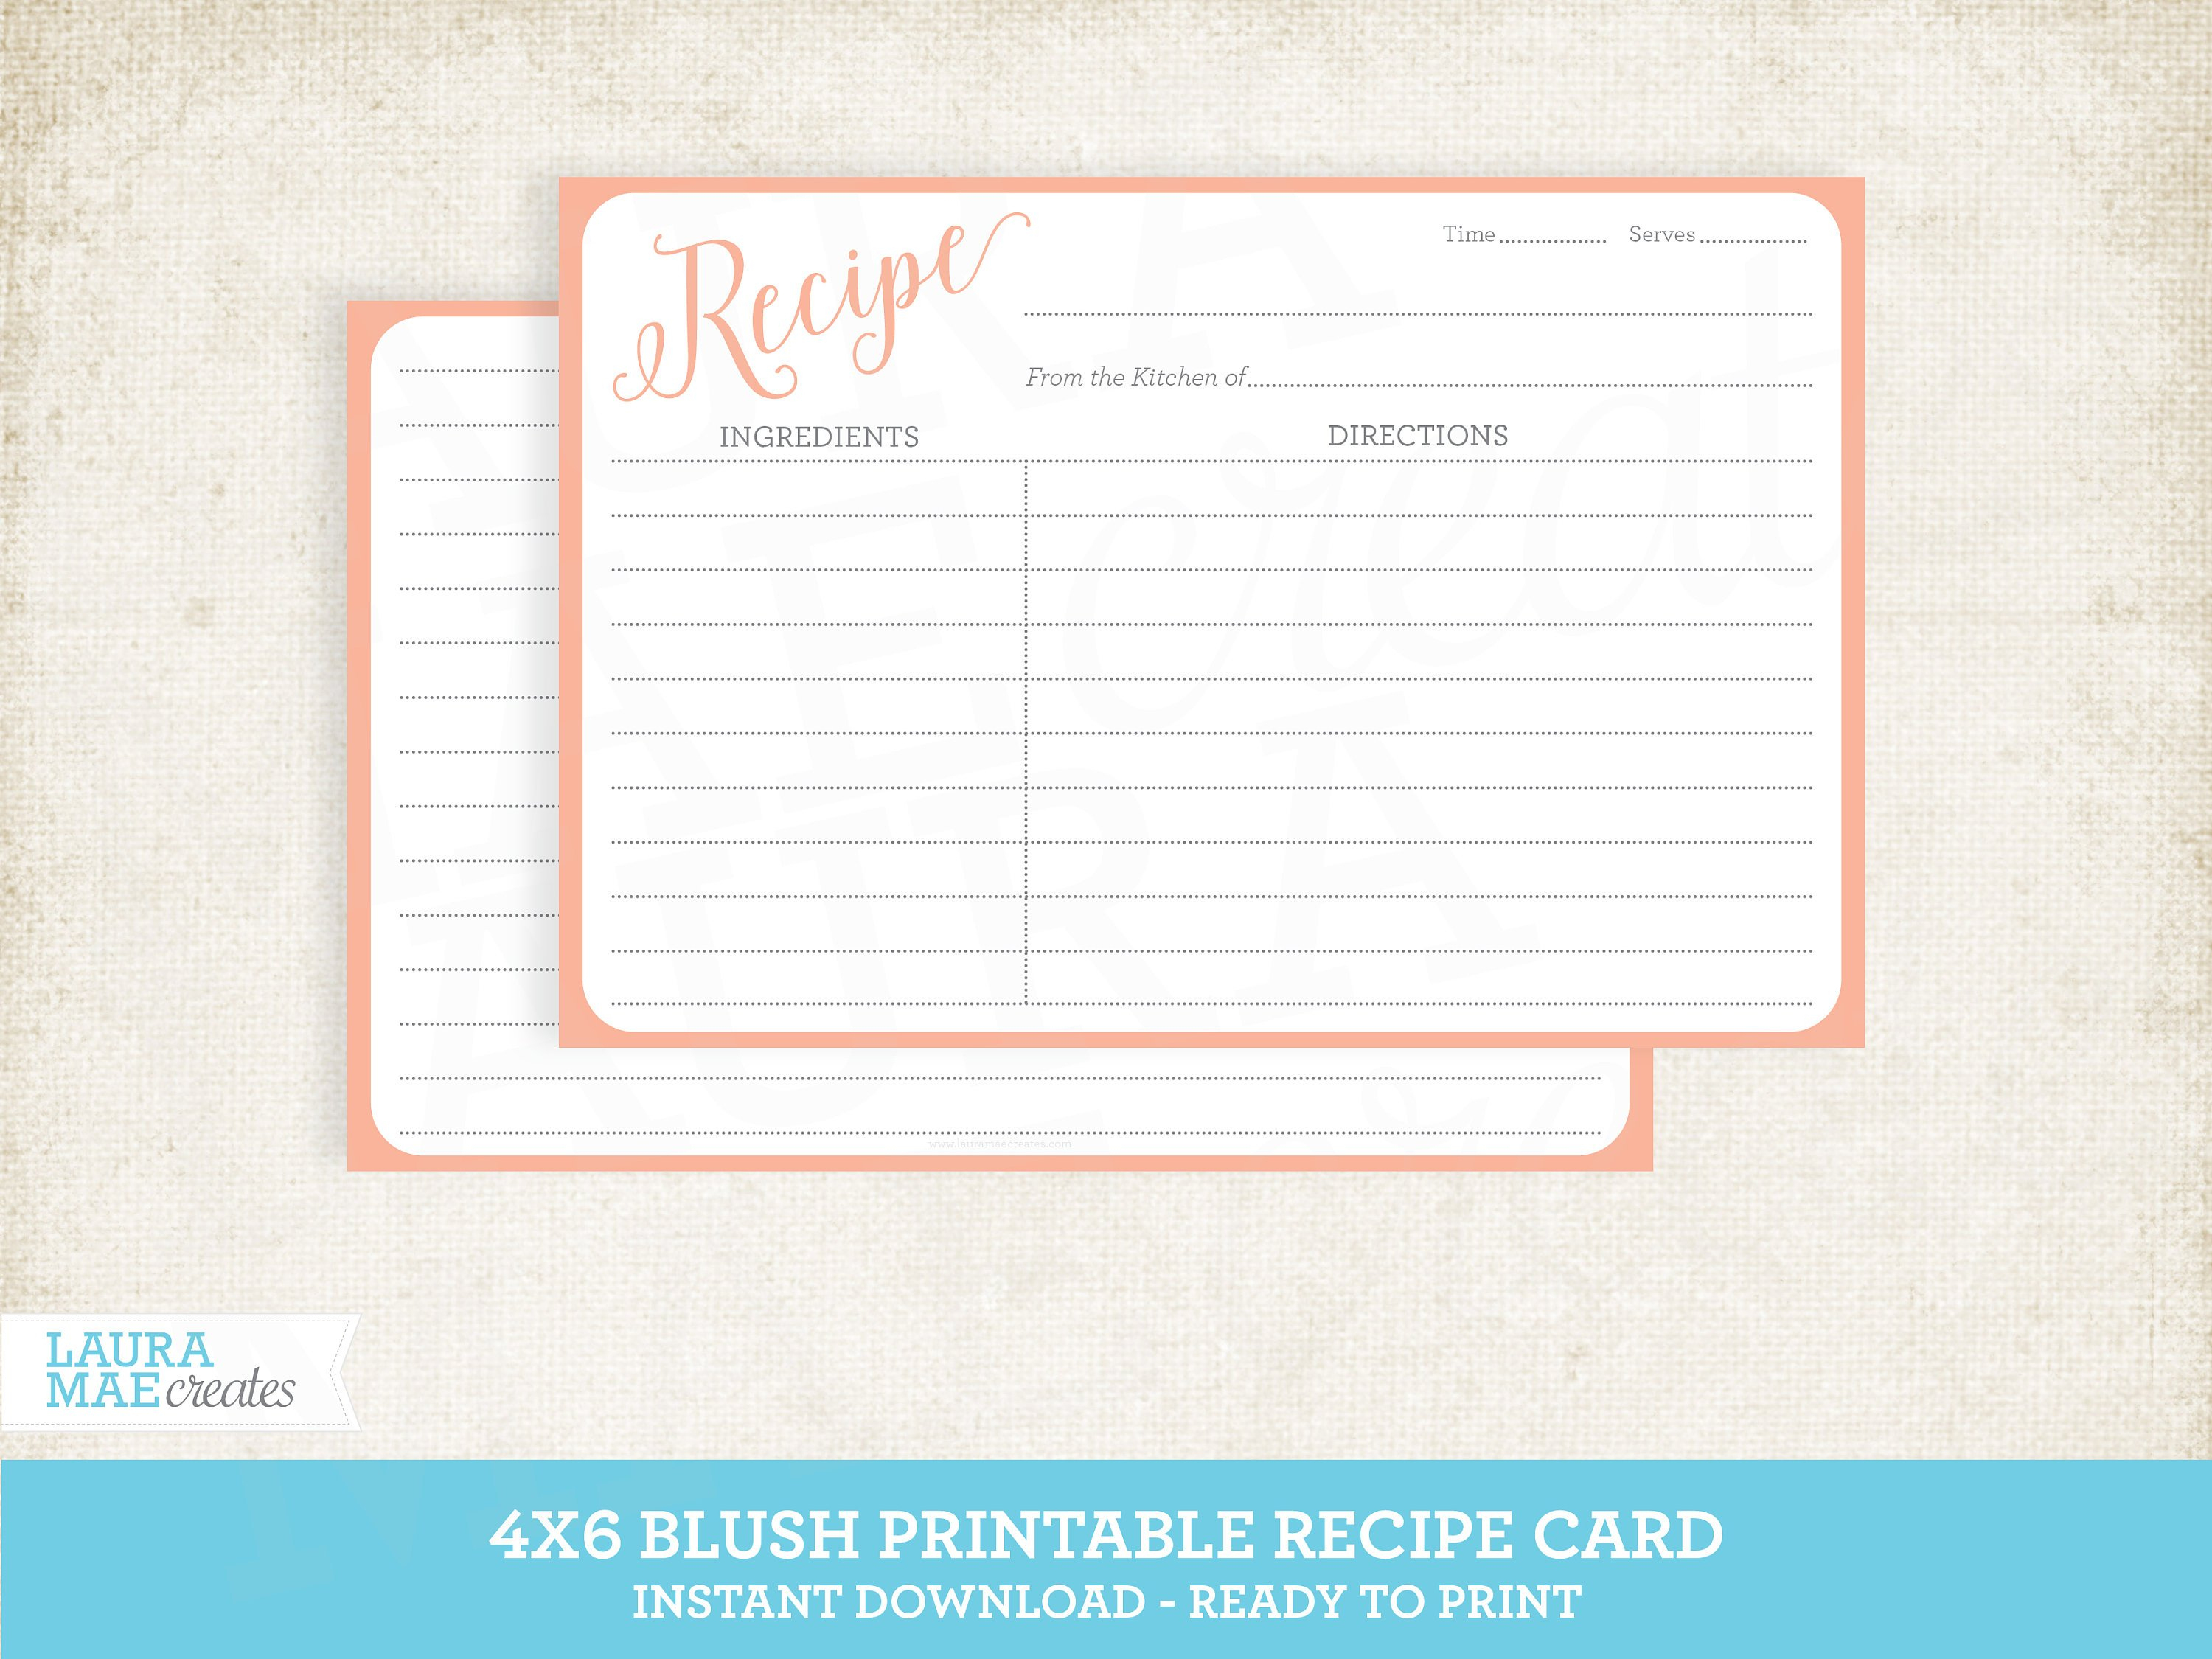 Blush 4X6 Printable Recipe Card Editable Recipe Card Free | Etsy - Free Printable Photo Cards 4X6